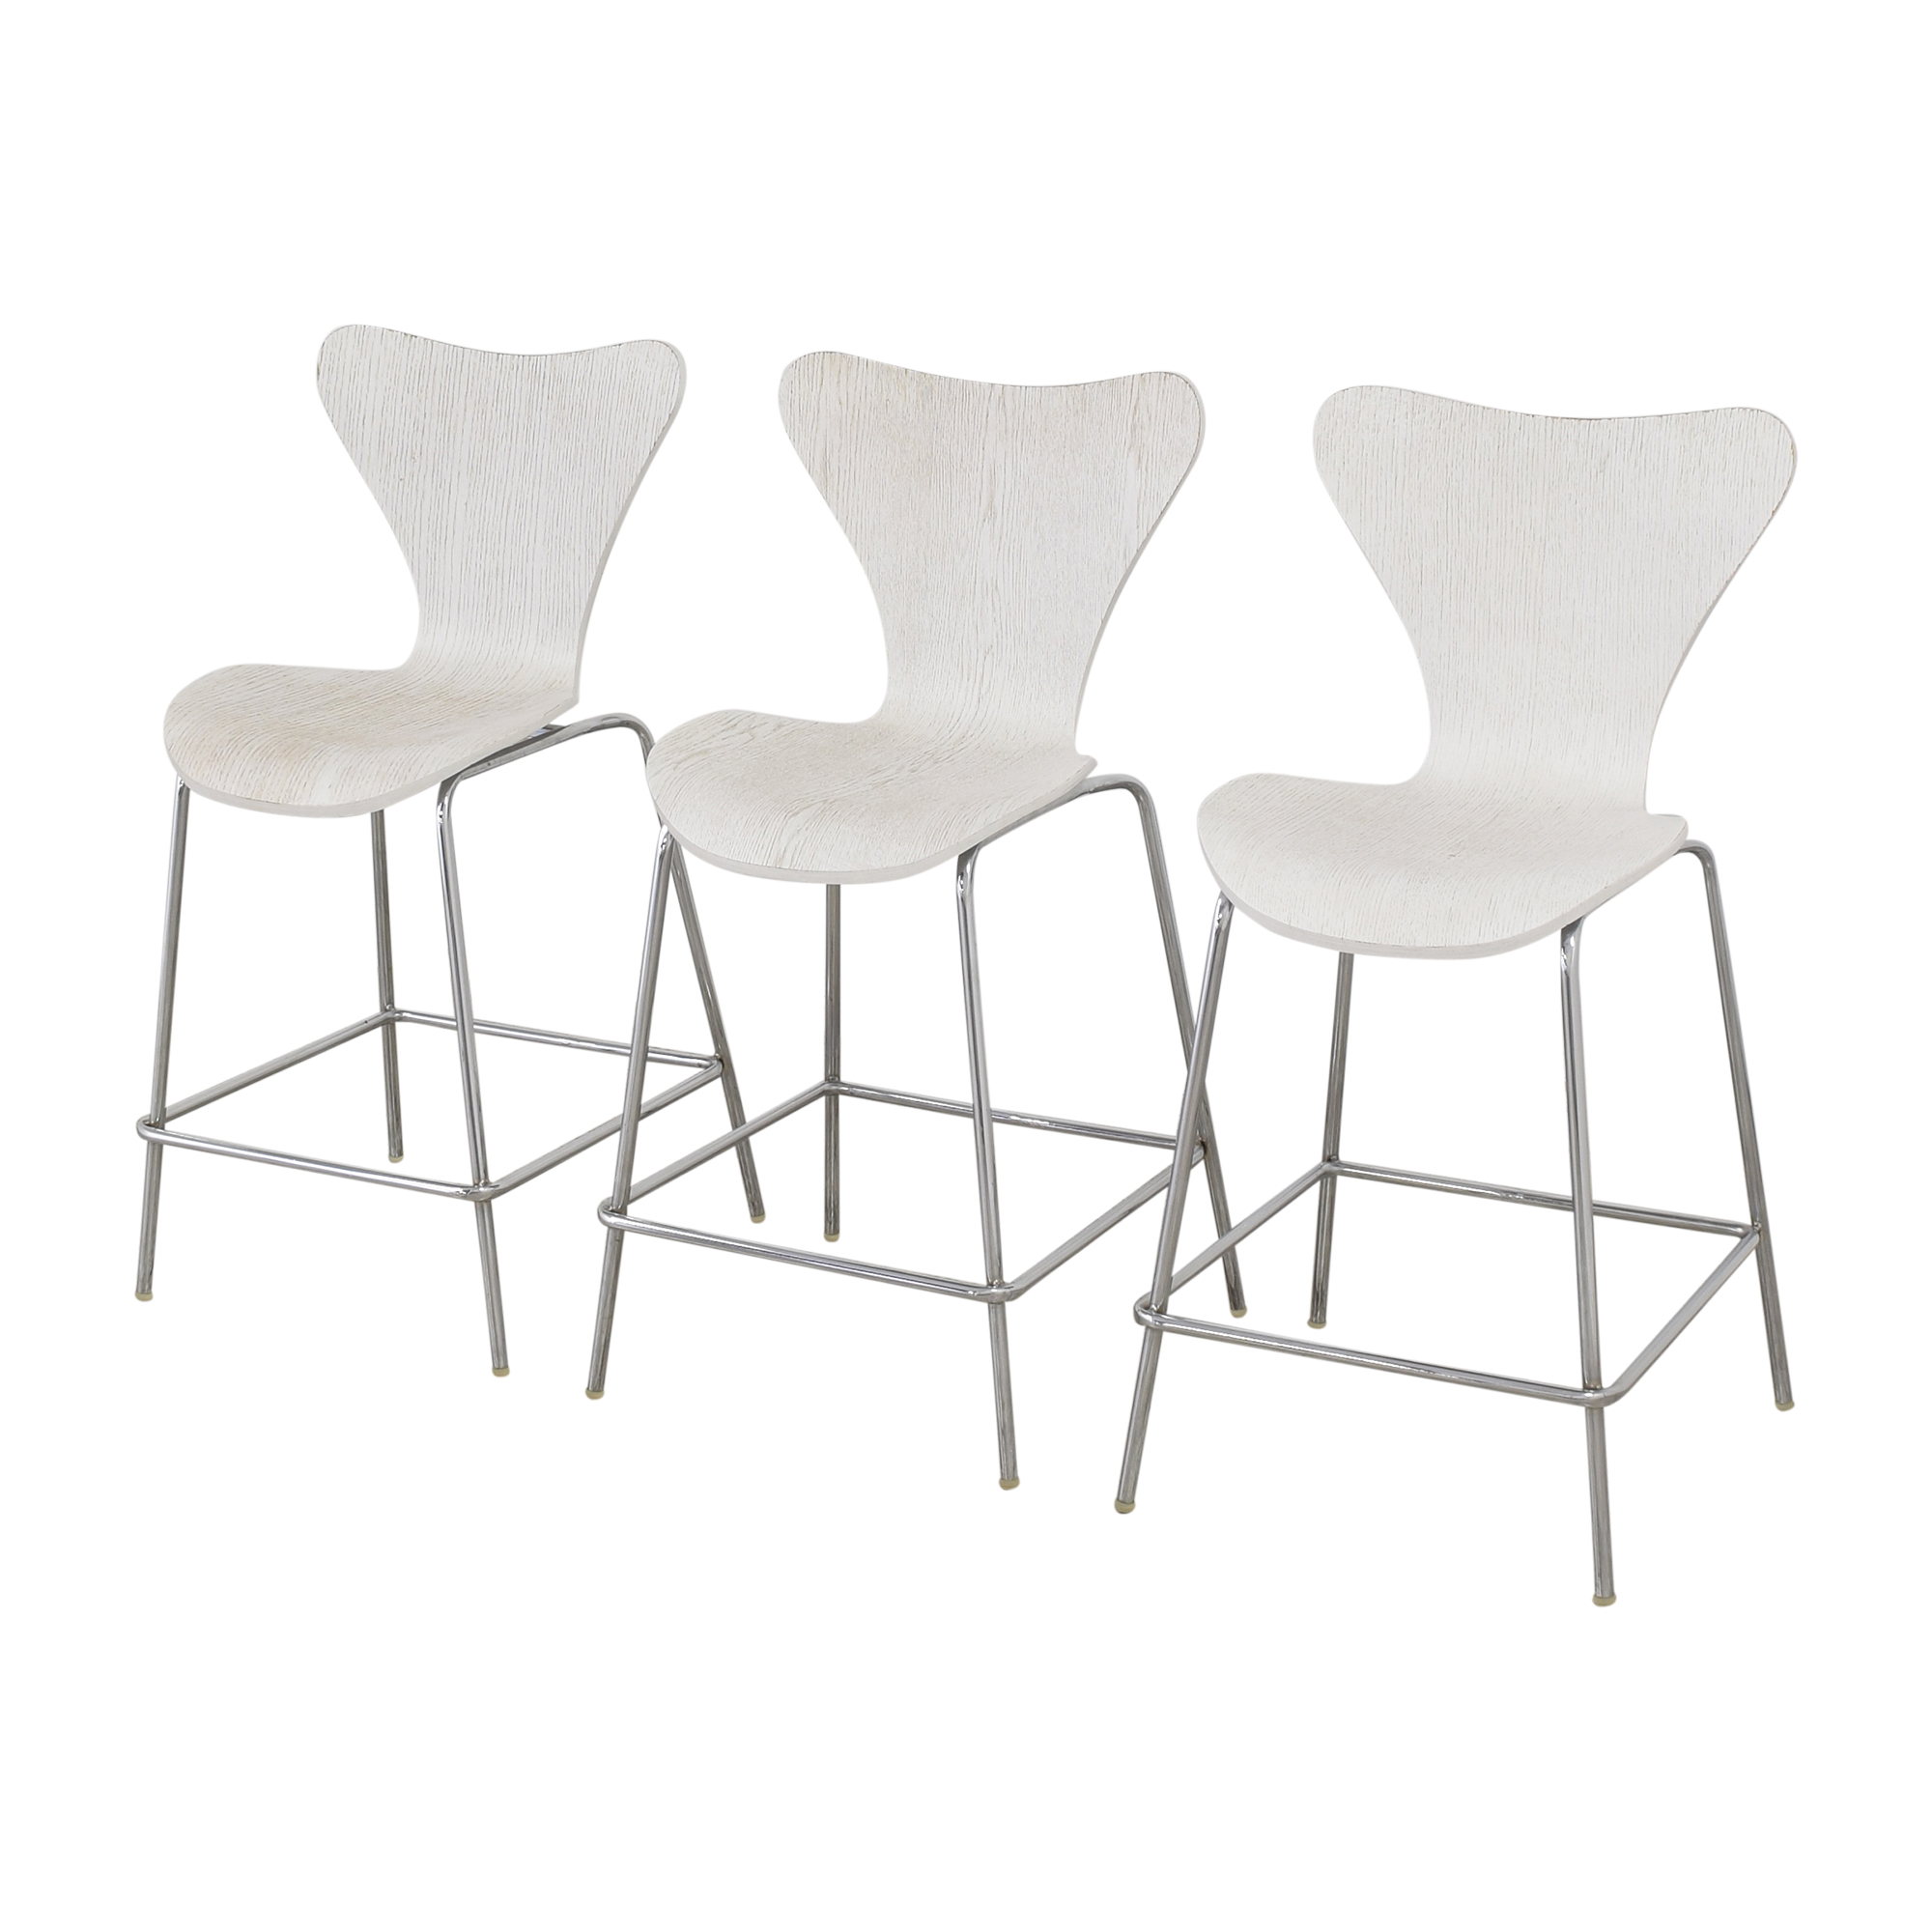 Restoration Hardware Restoration Hardware Magnus Counter Stools Chairs